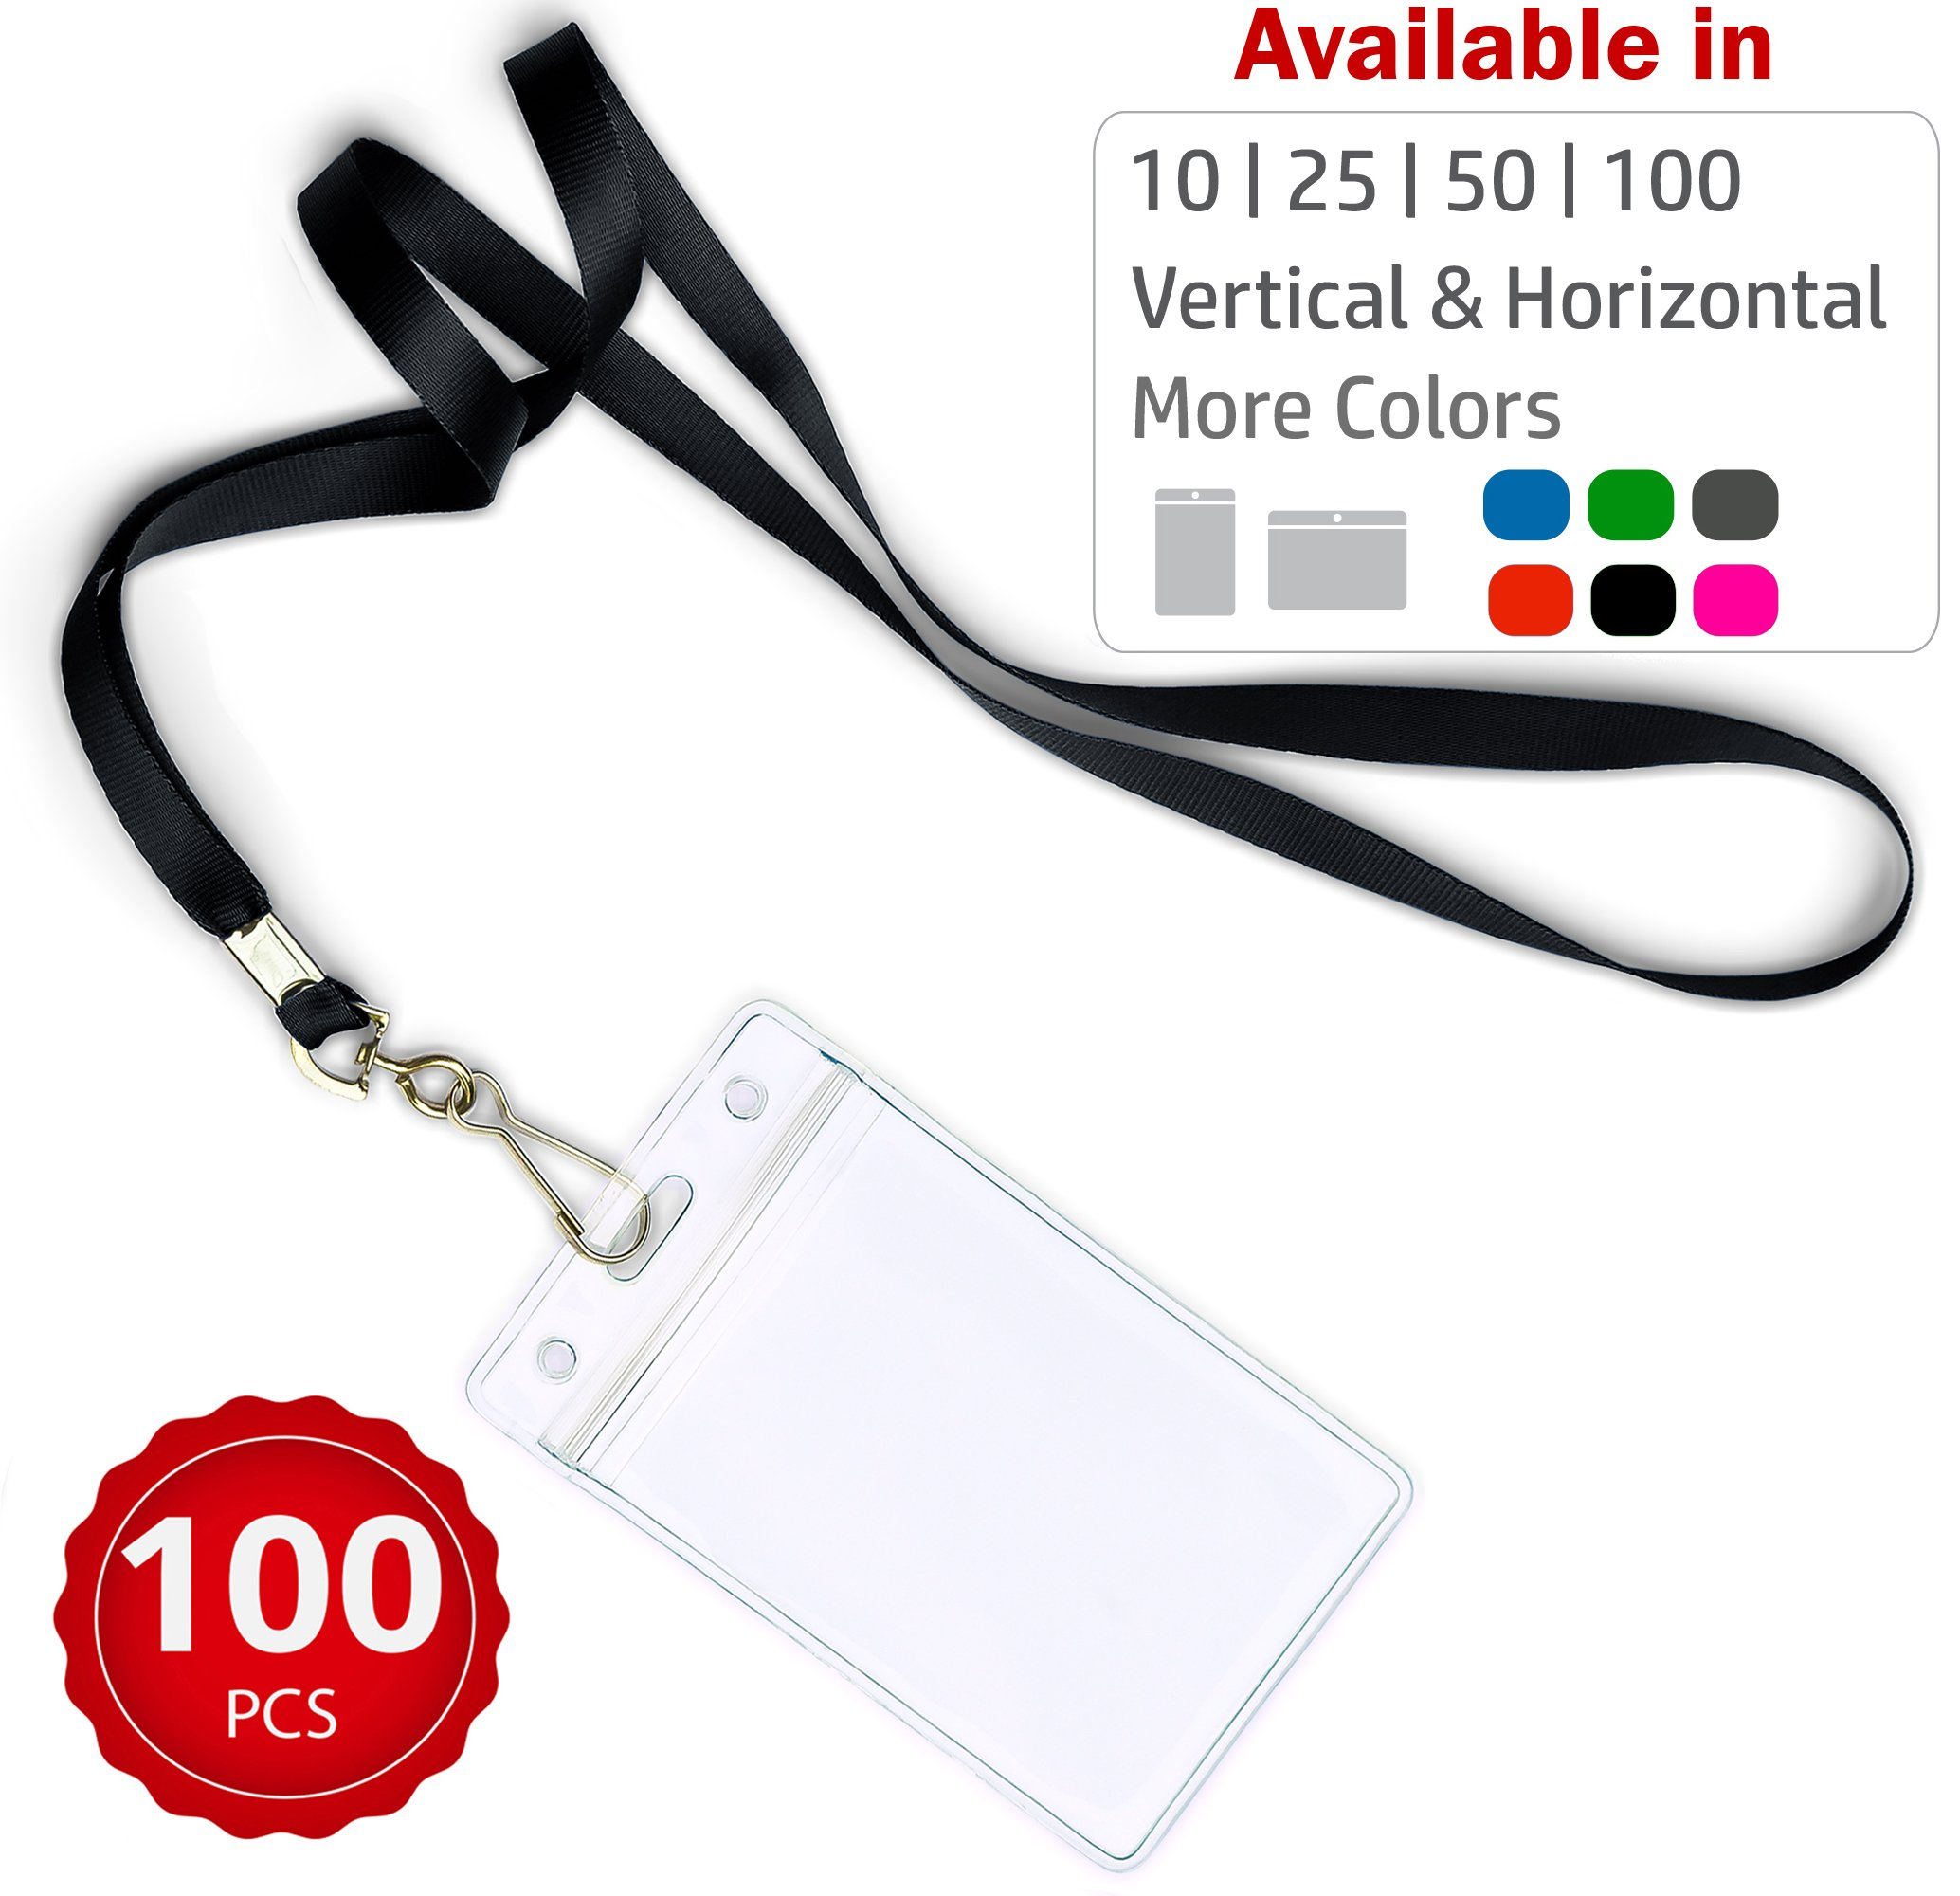 Durably Woven Lanyards & Vertical ID Badge Holders ~Premium Quality, Waterproof & Dustproof ~ For Moms, Teachers, Tours, Events, Businesses, Cruises & More (100 Pack, Black) by Stationery King …